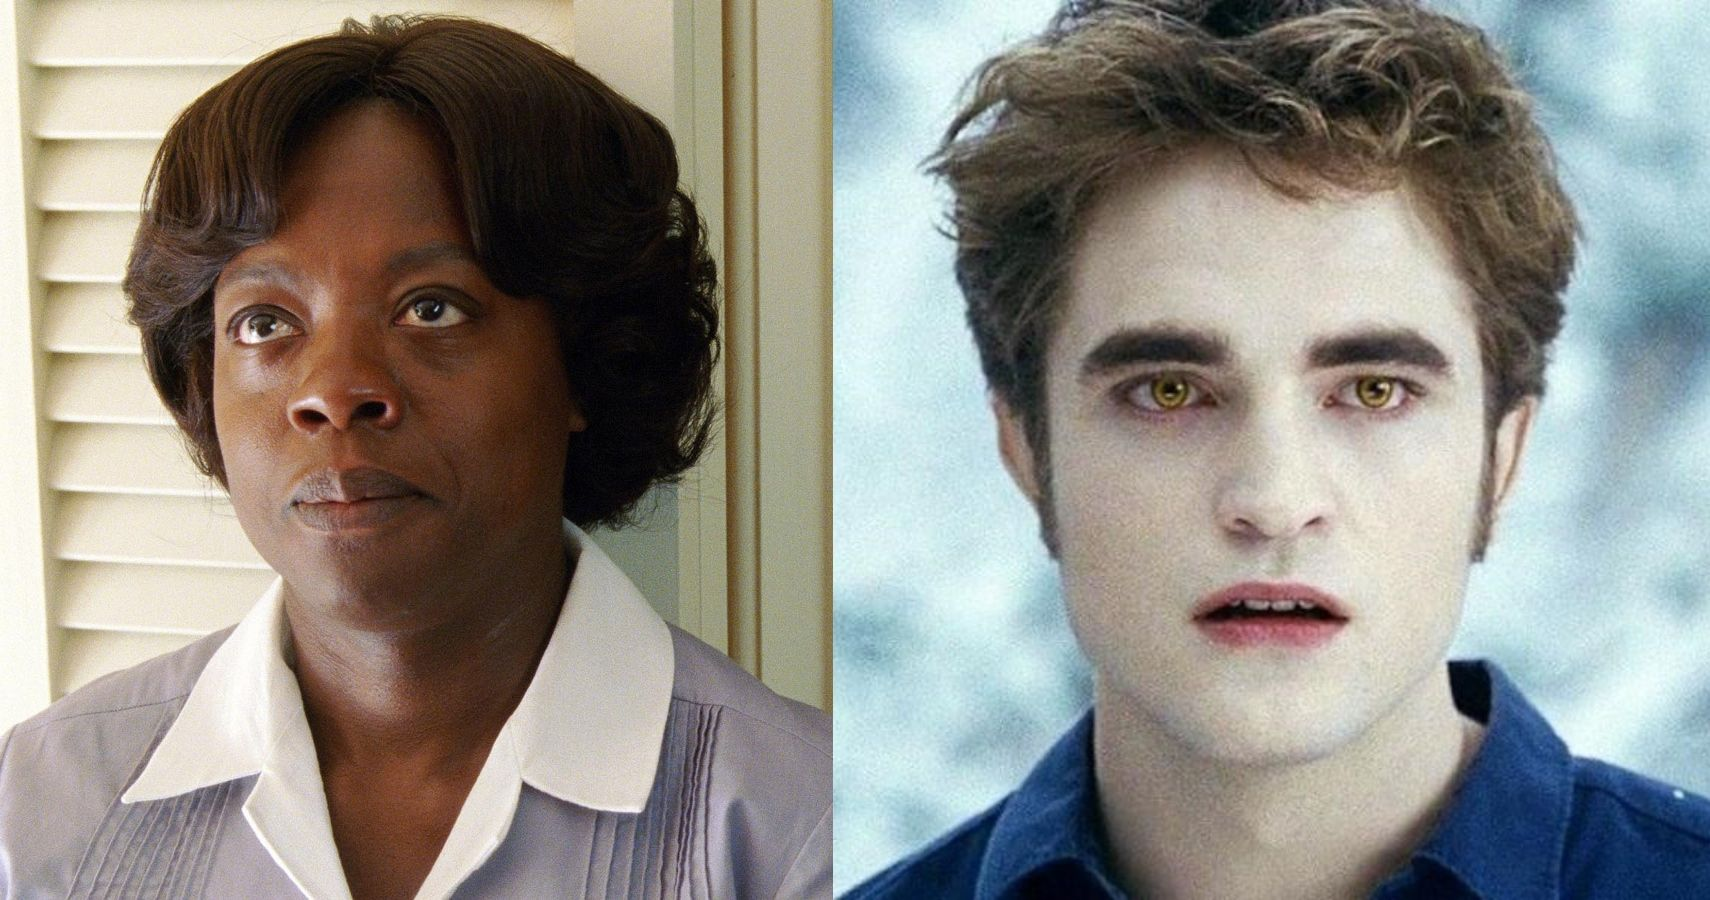 Viola Davis & Other Celebrities Who Regret Their Famous Film Roles